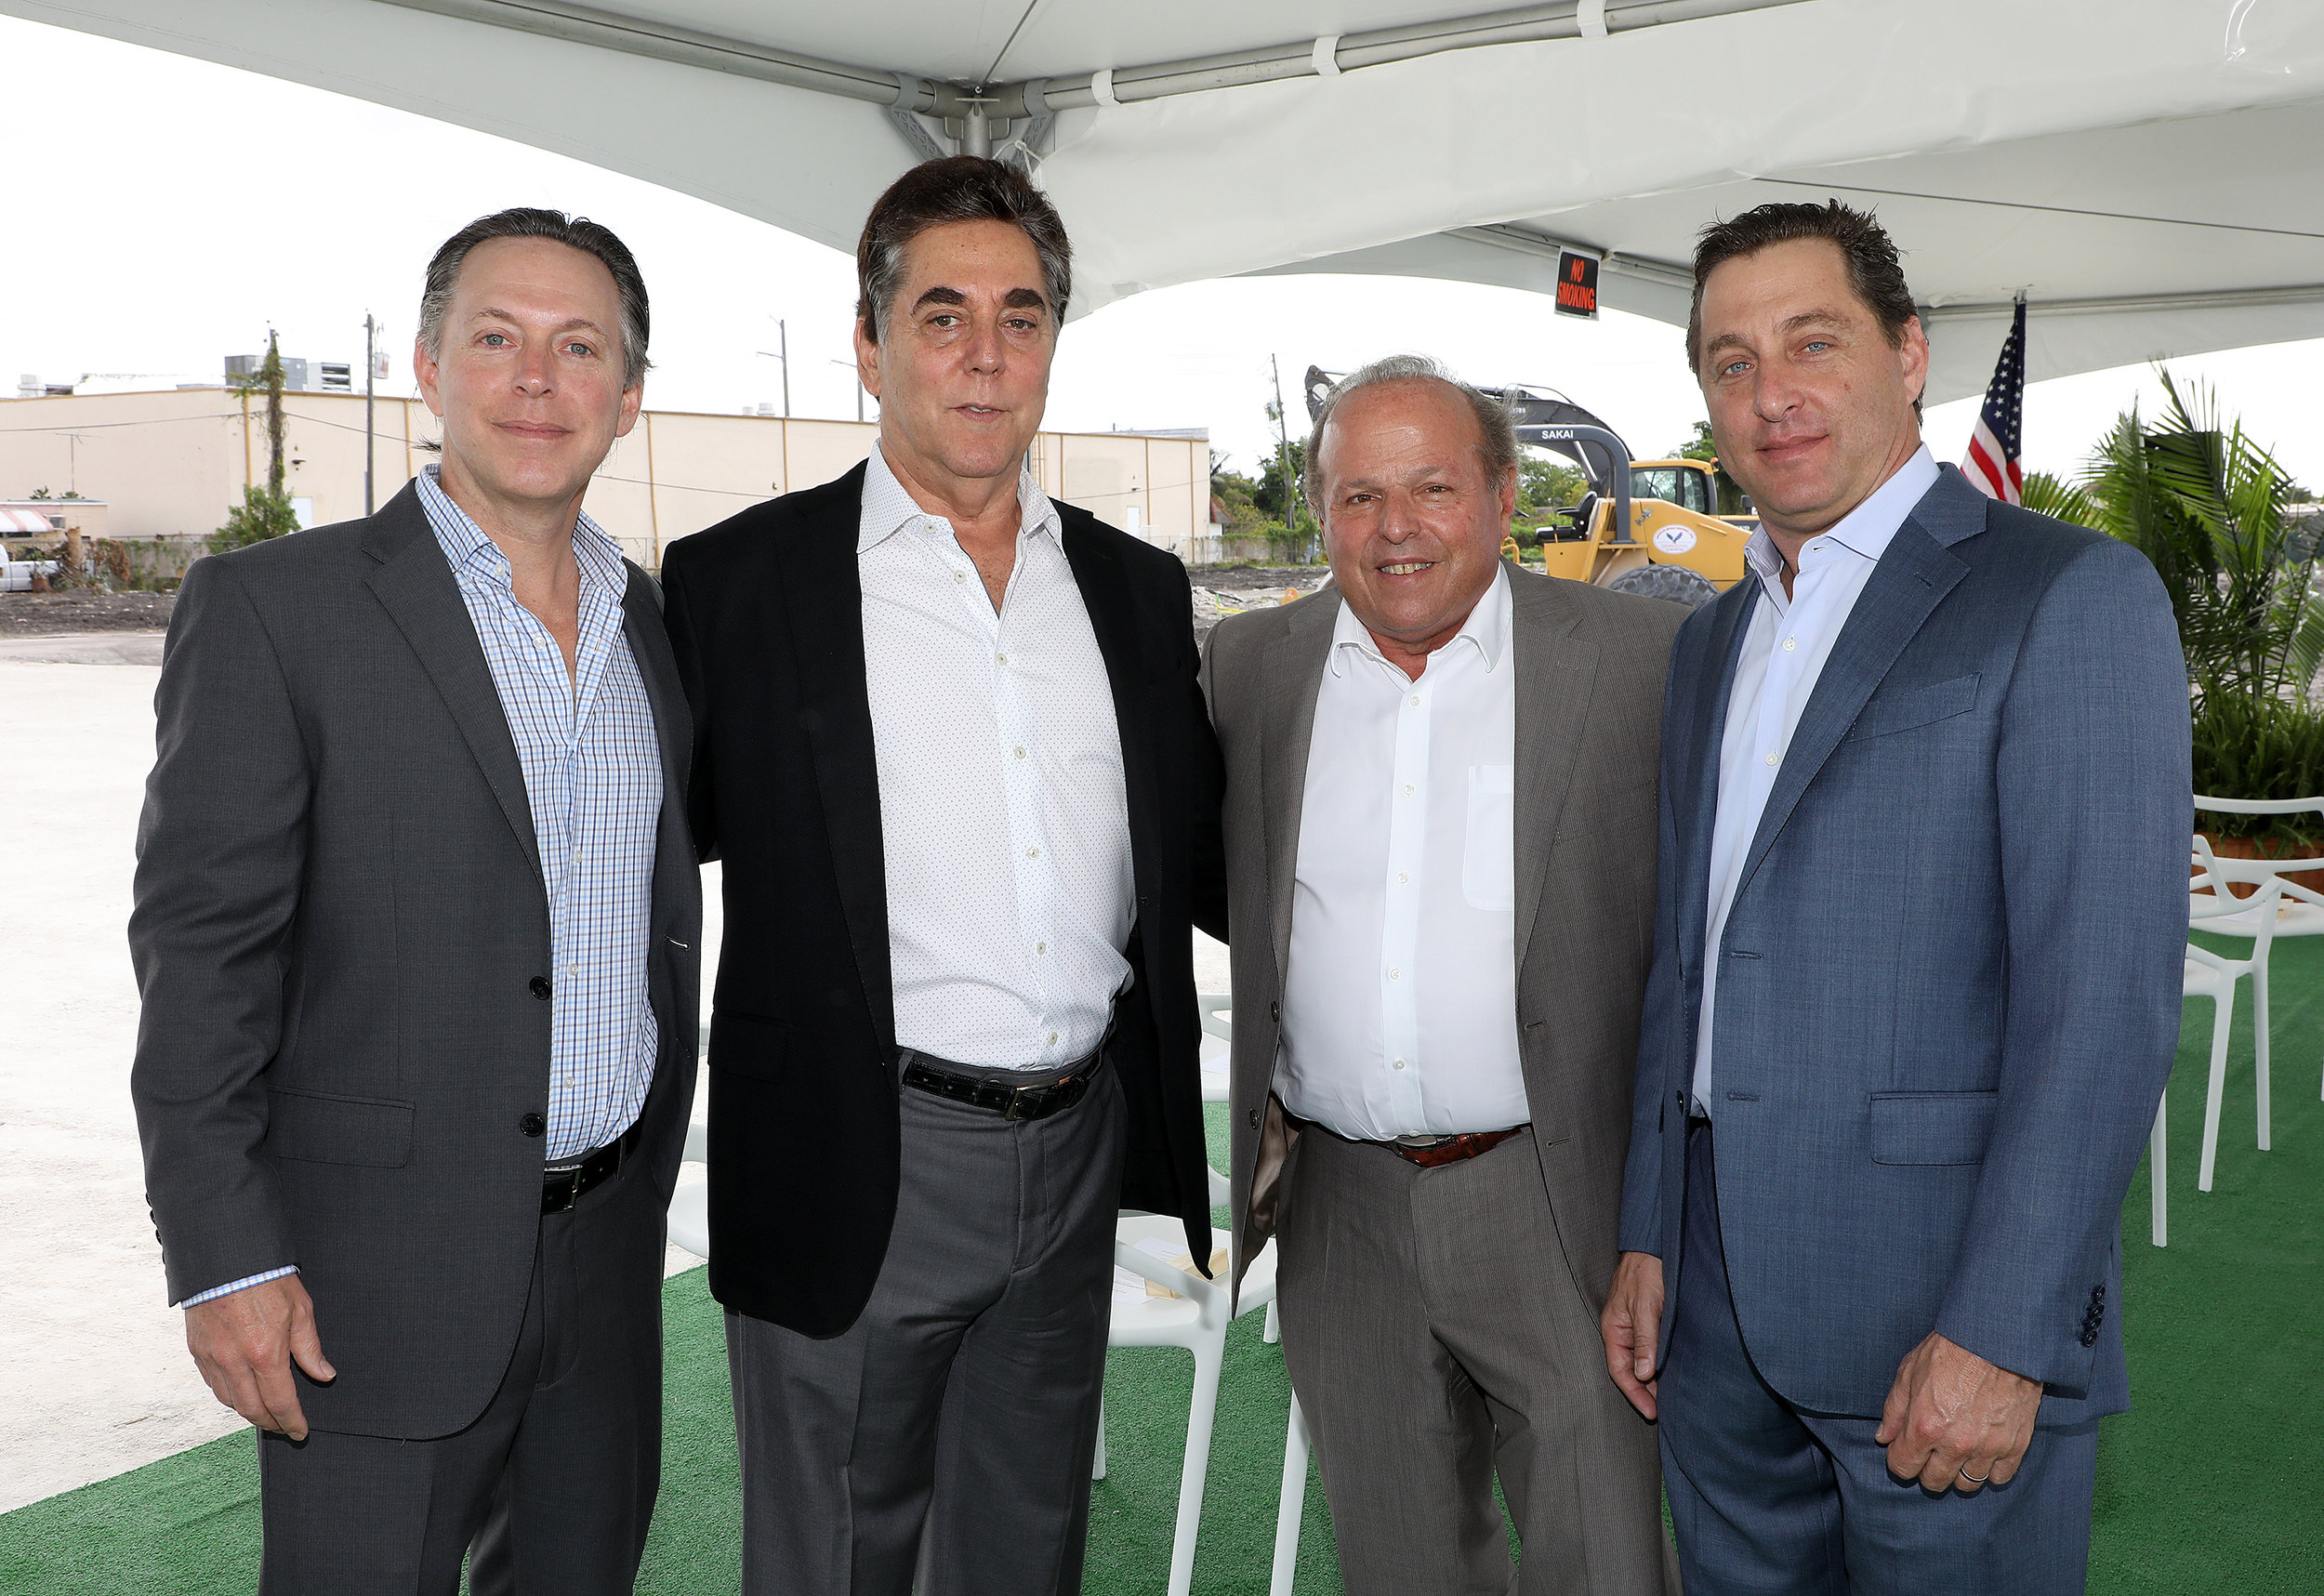 Coral Rock Development Group Principals: Victor Brown, Stephen A. Blumenthal, Michael Wohl and David Brown